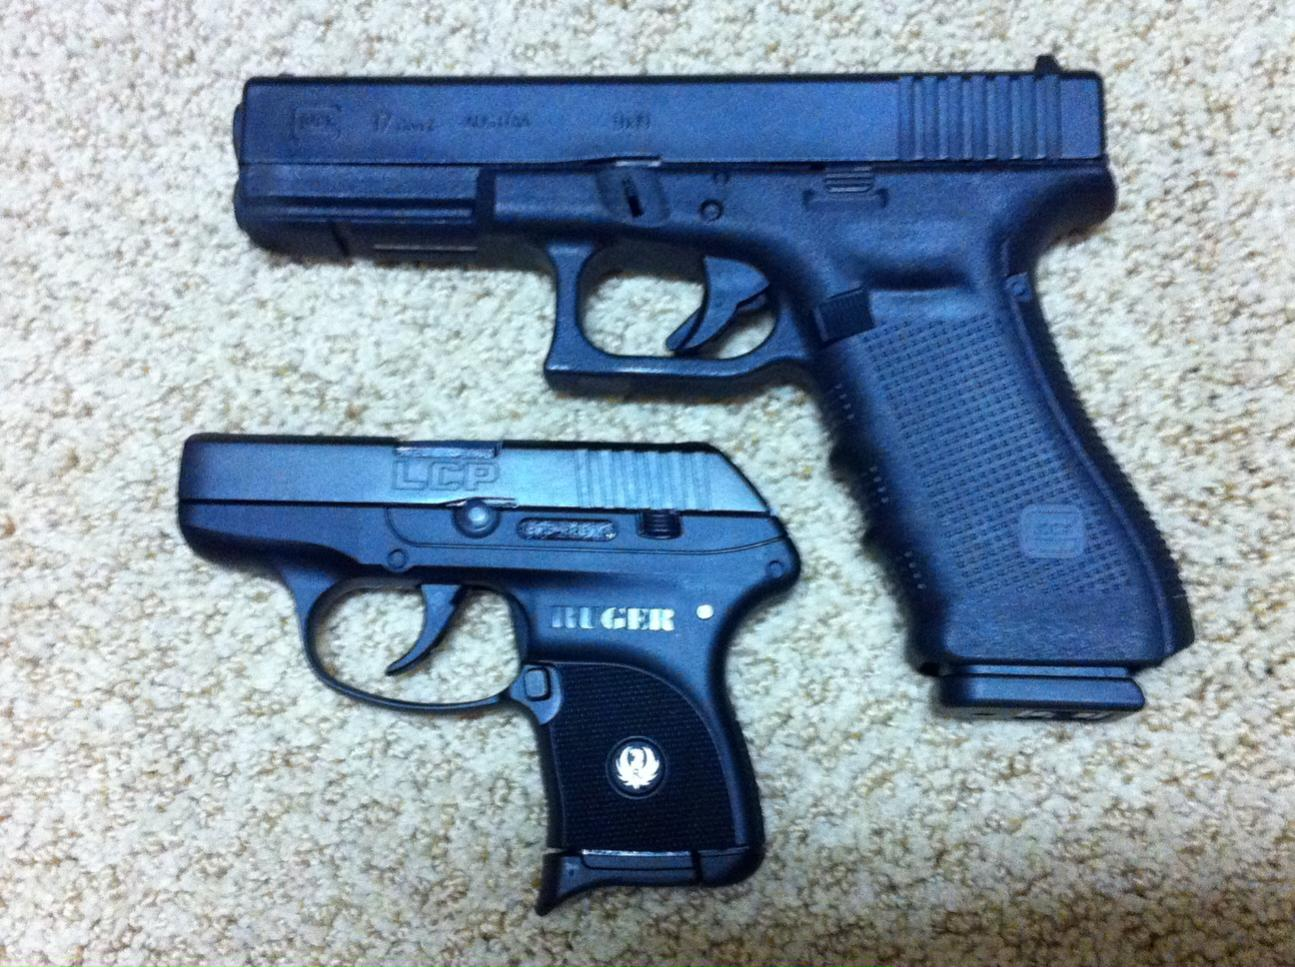 Are full sized Glocks really that hard to carry versus a compact one?-photo.jpg